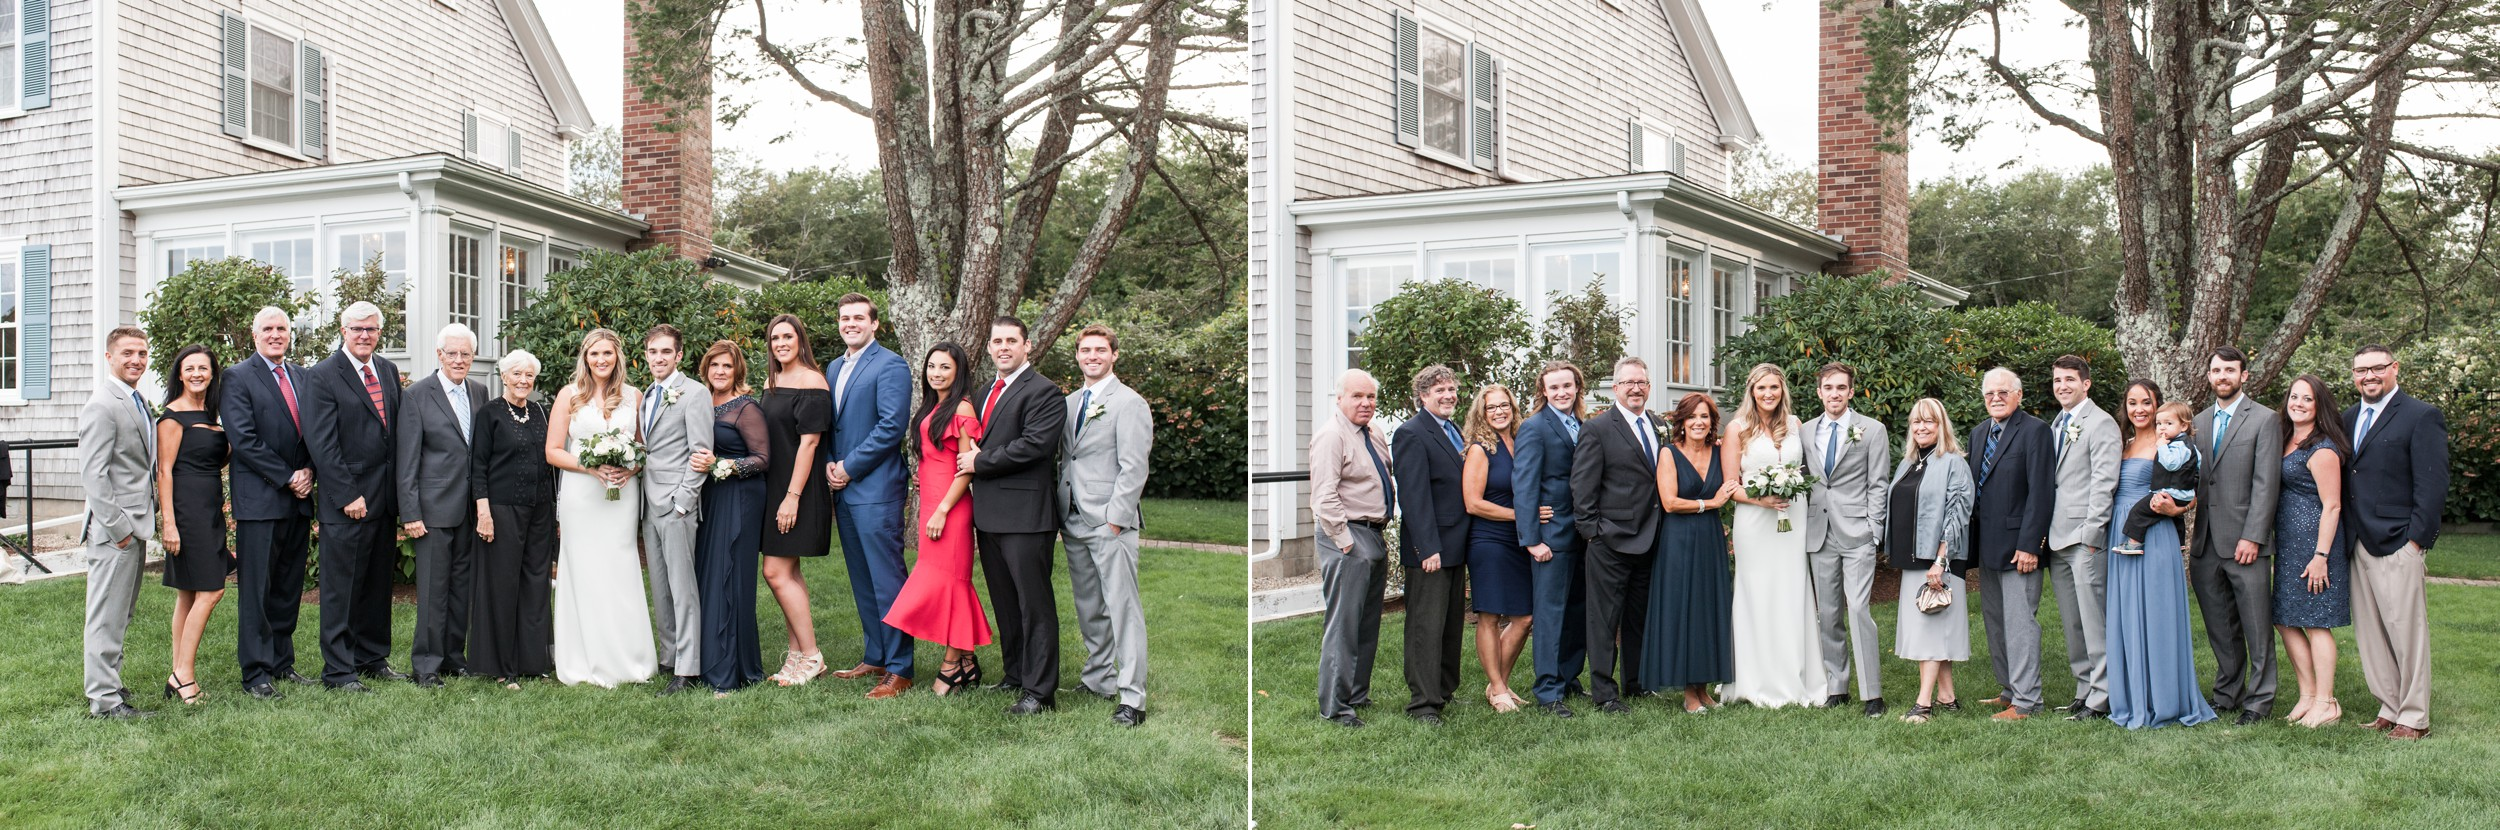 wedding planning family portraits made easy The Dennis Inn wedding extended family photos with aunts uncles and cousins.jpg